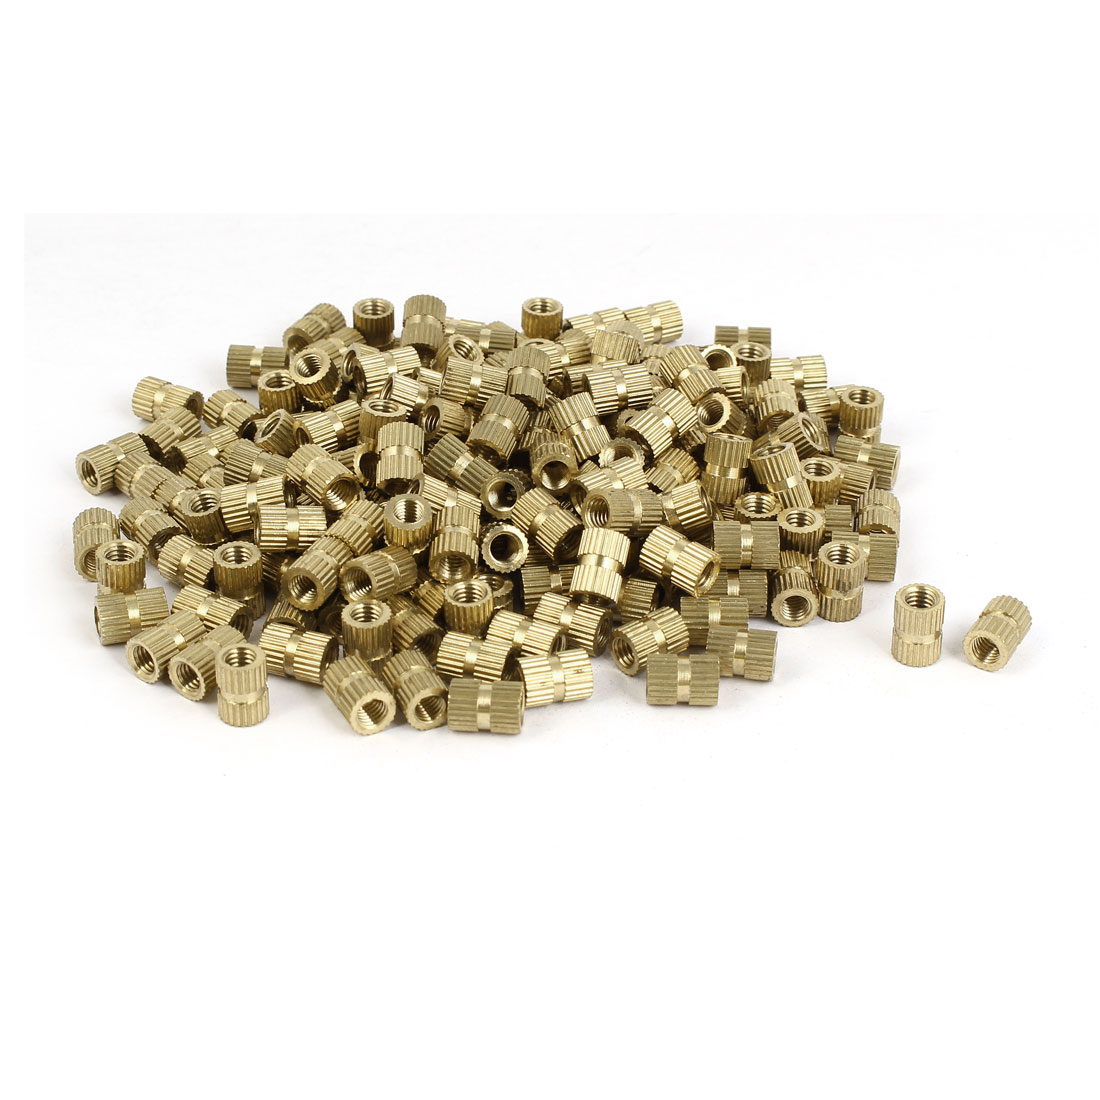 M5 x 10mm Brass Cylinder Injection Molding Knurled Insert Embedded Nuts 100PCS